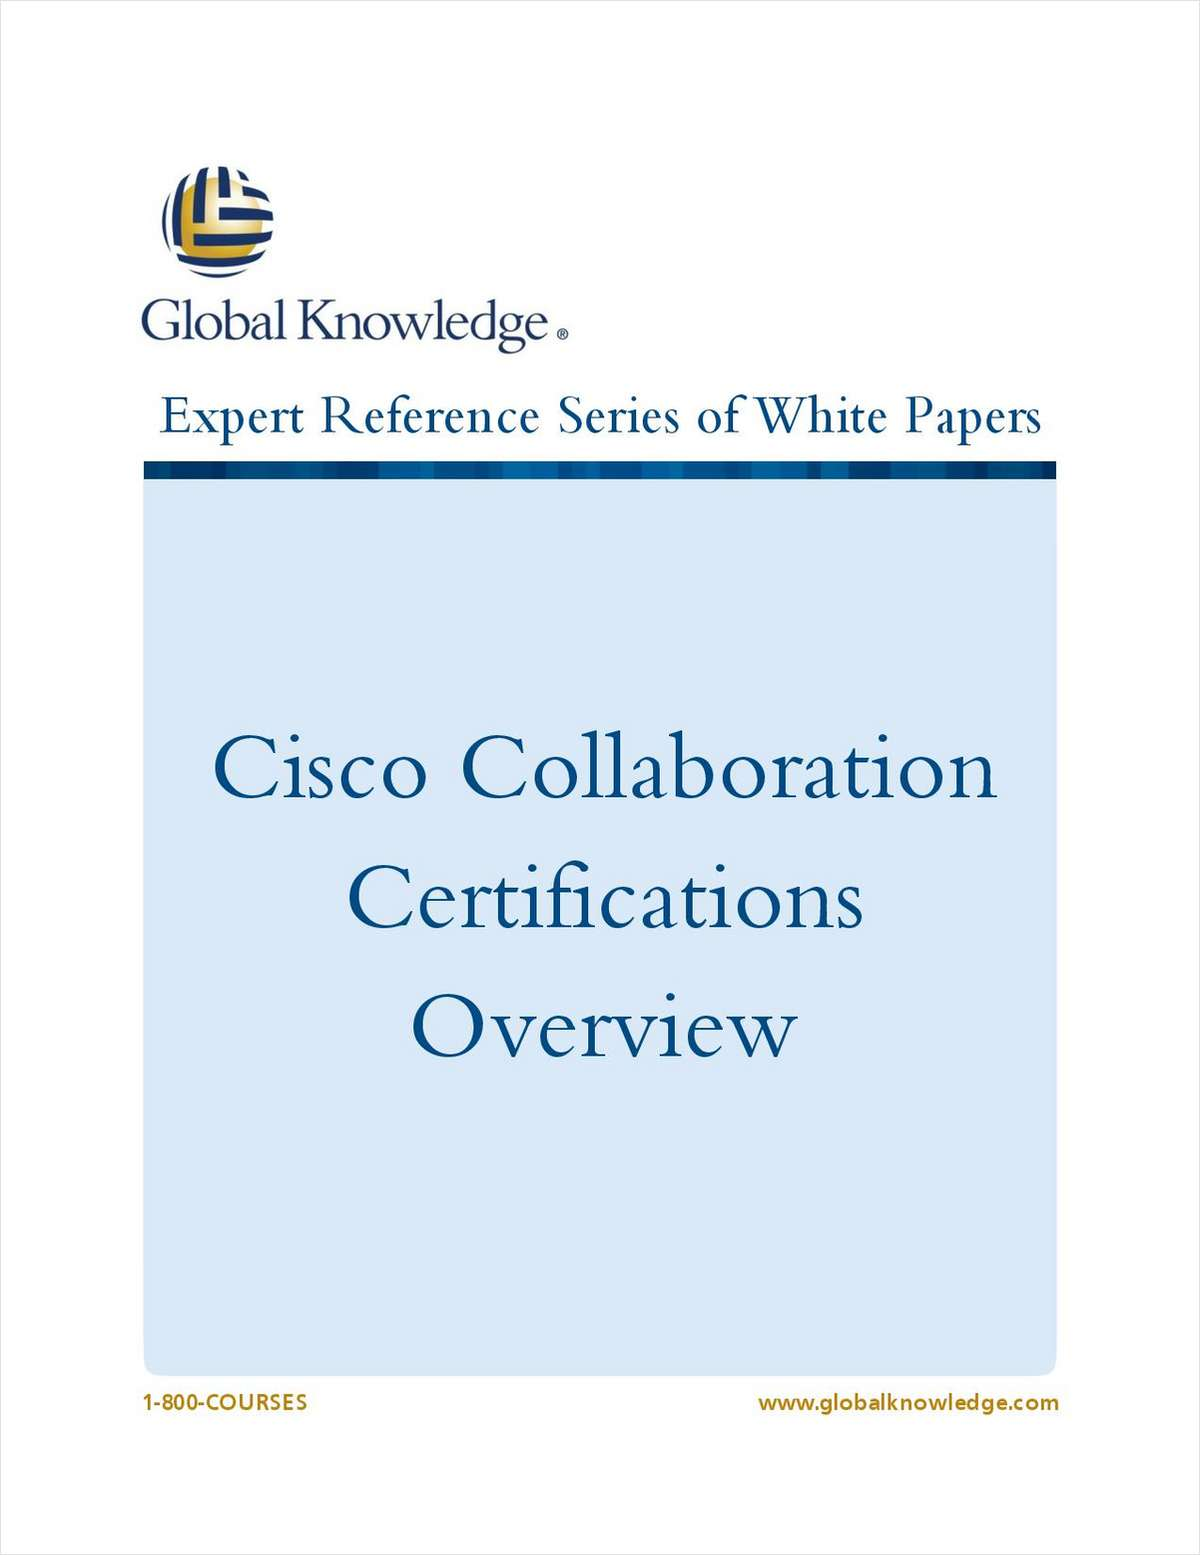 Cisco Collaboration Certifications Overview